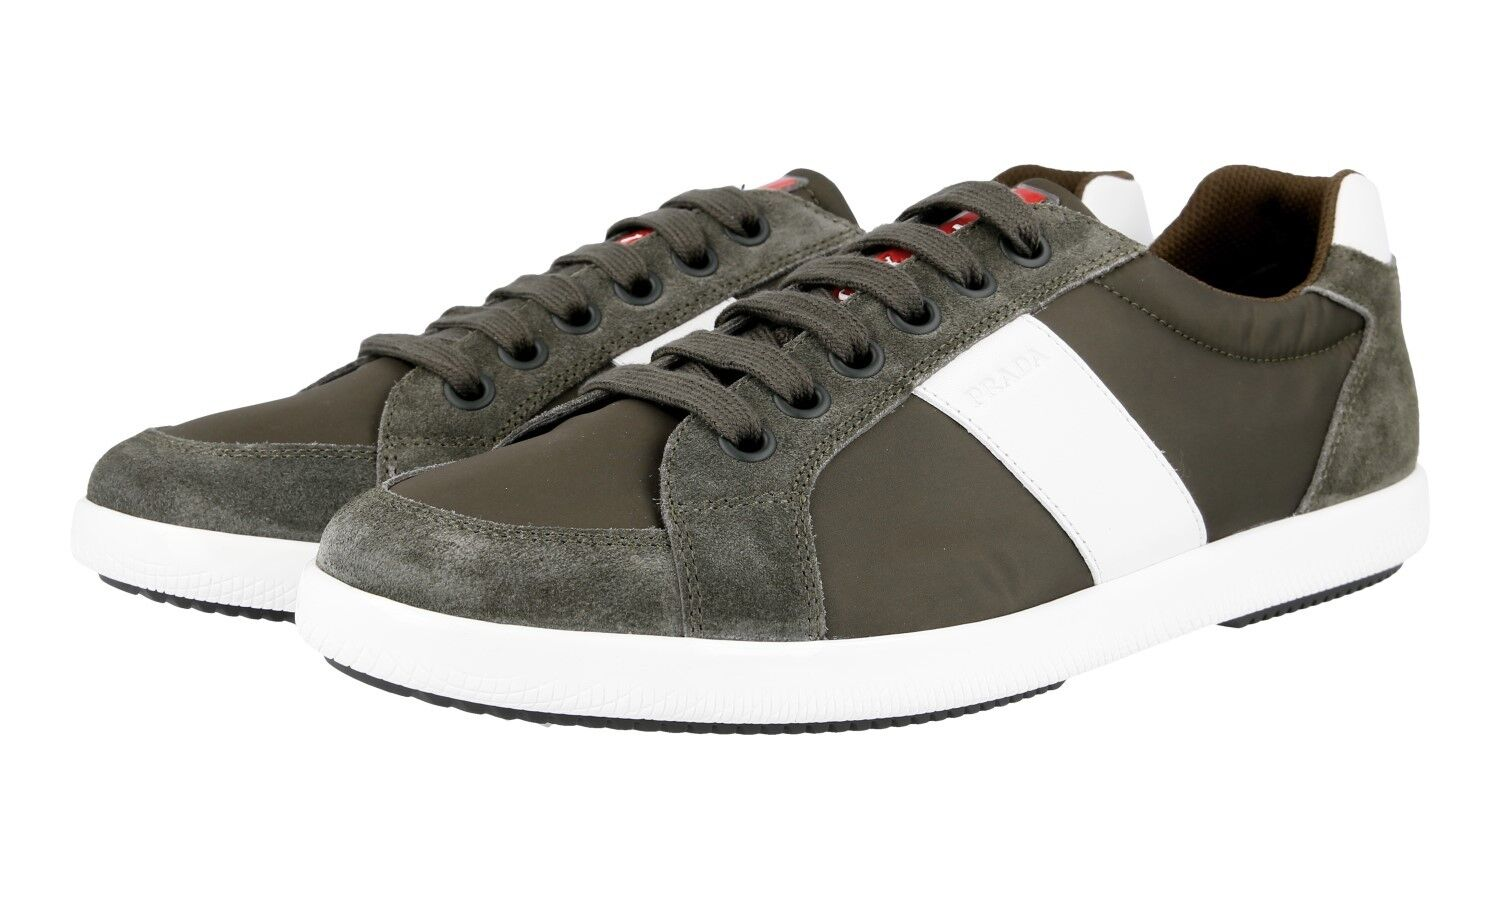 AUTHENTIC LUXURY PRADA SNEAKERS SHOES 4E2845 MIMETICO NEW 7 41 41,5